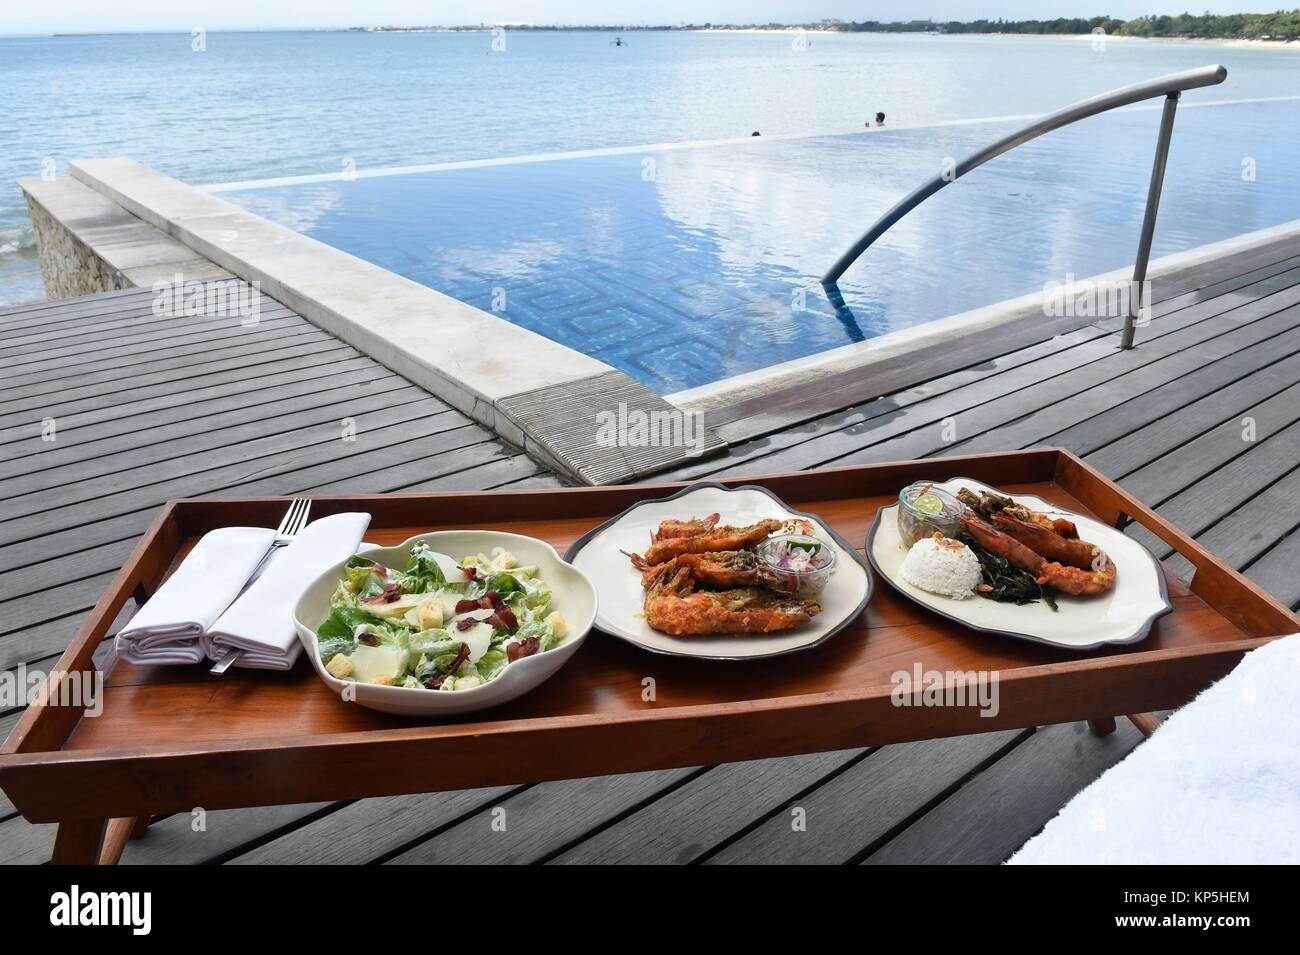 Four Seasons Hotel Bali High Resolution Stock Photography And Images Alamy